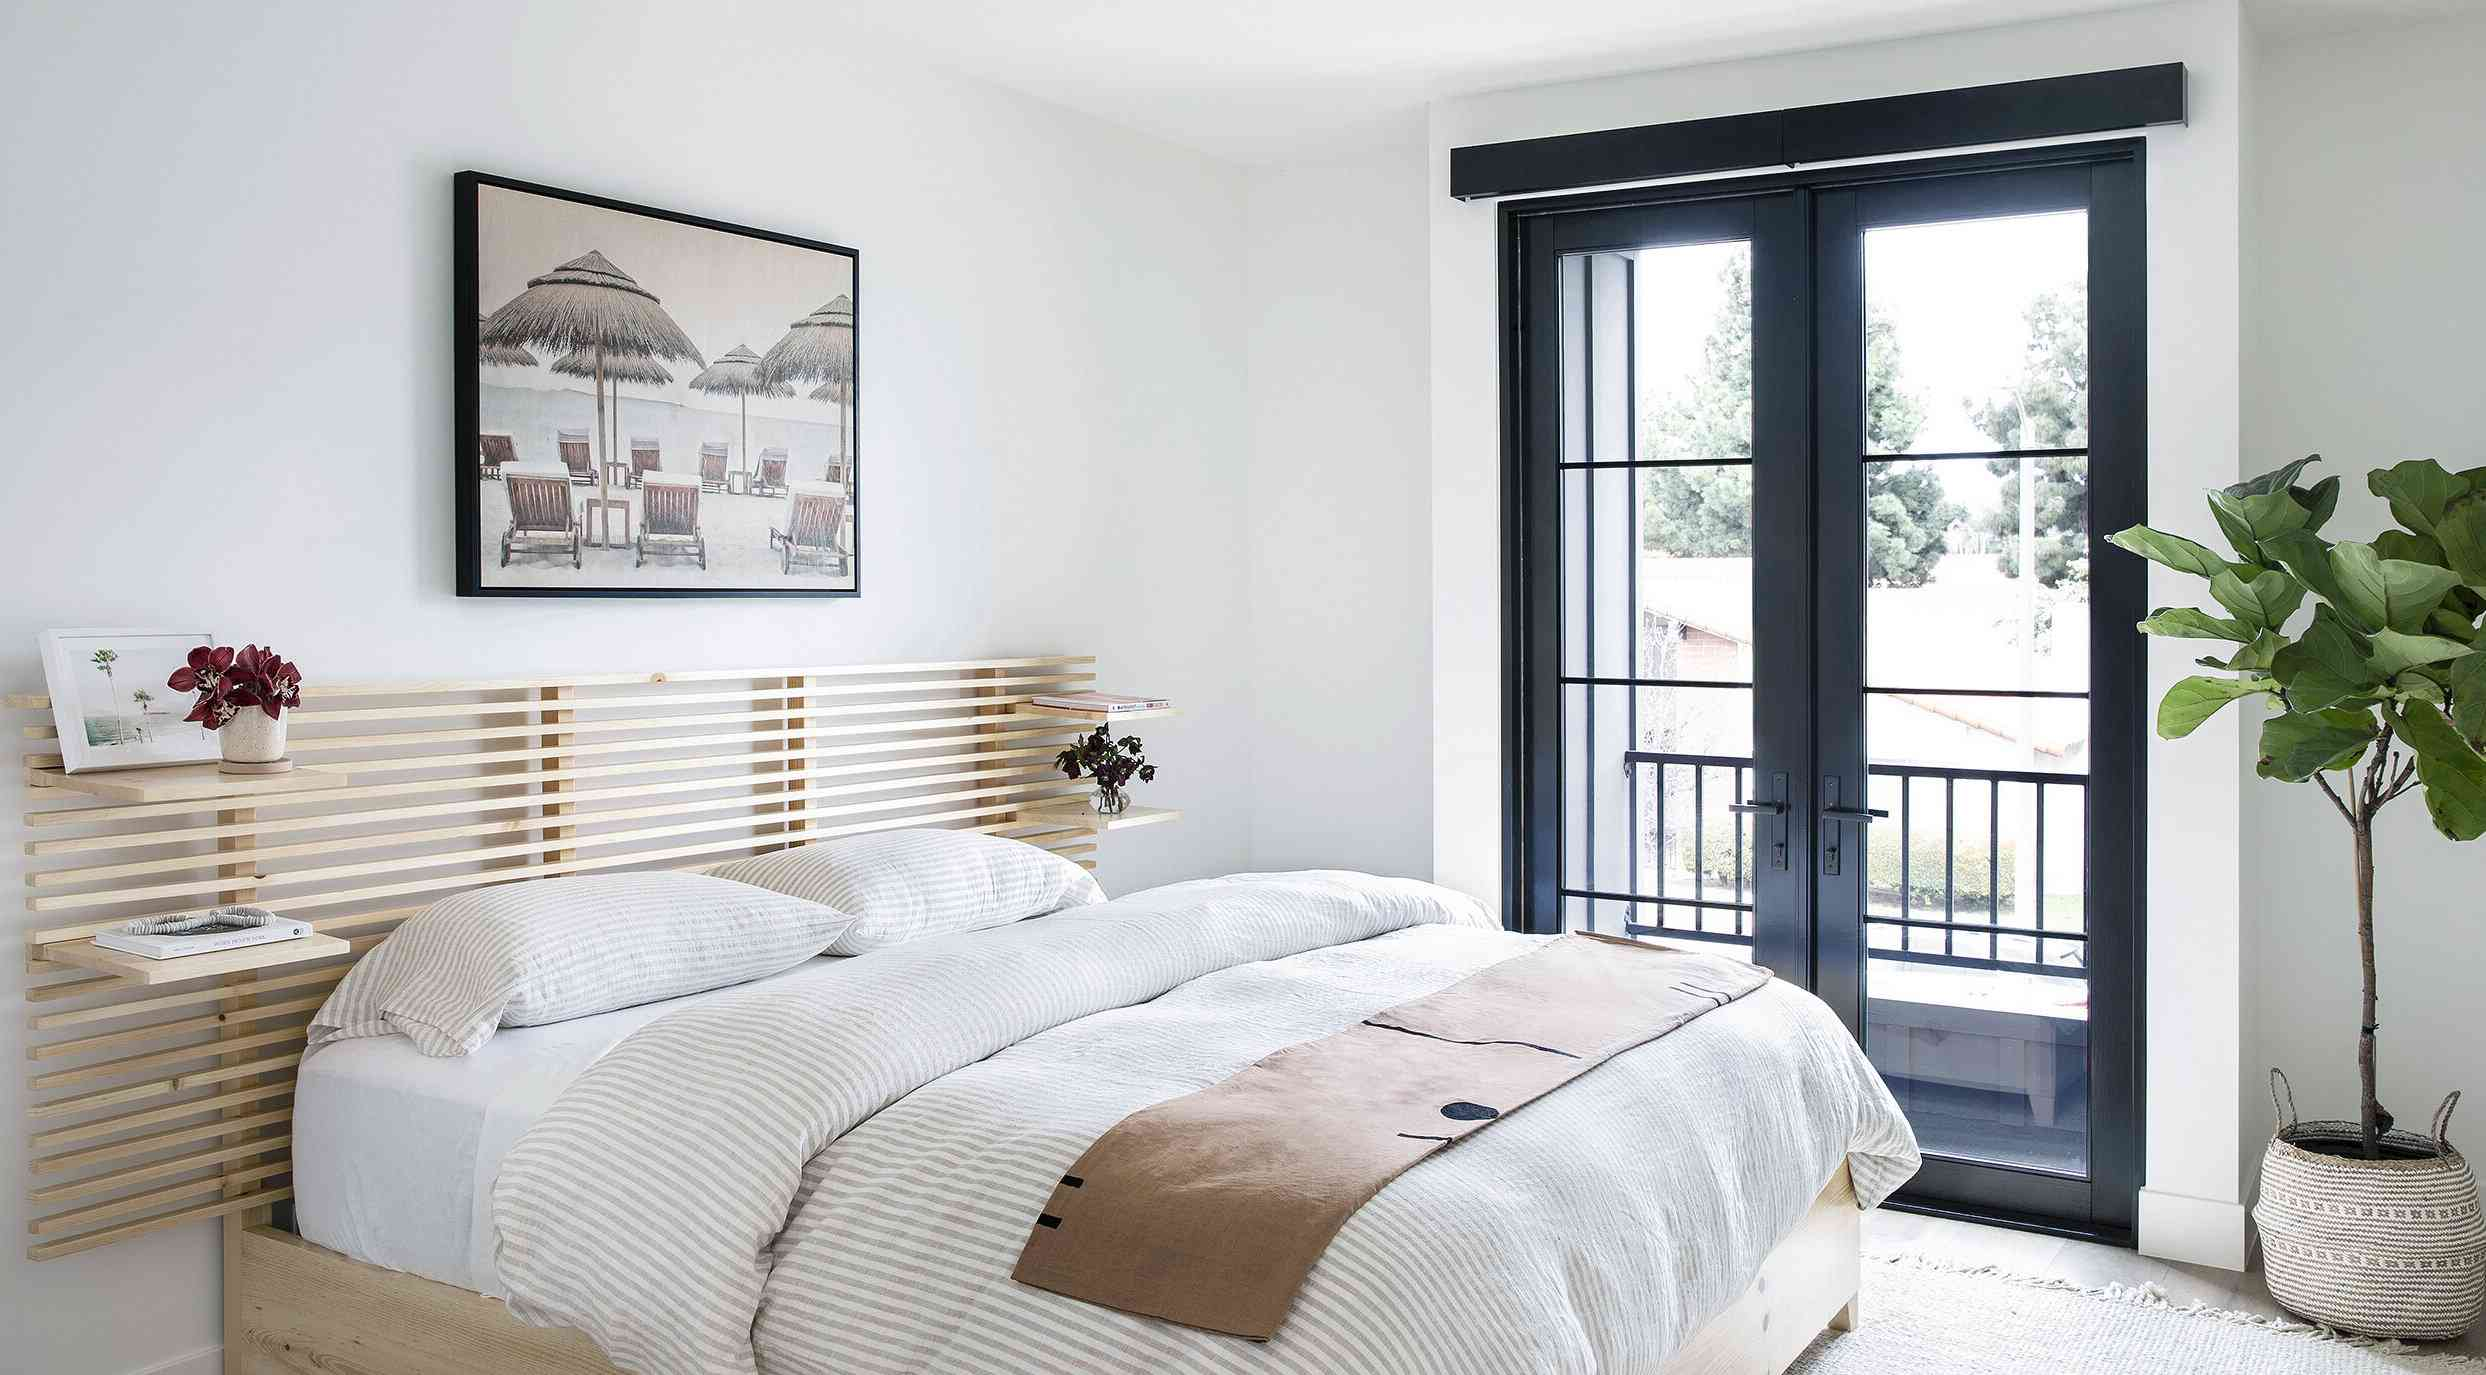 bedroom with white walls and bedding, floating shelves attached to headboard